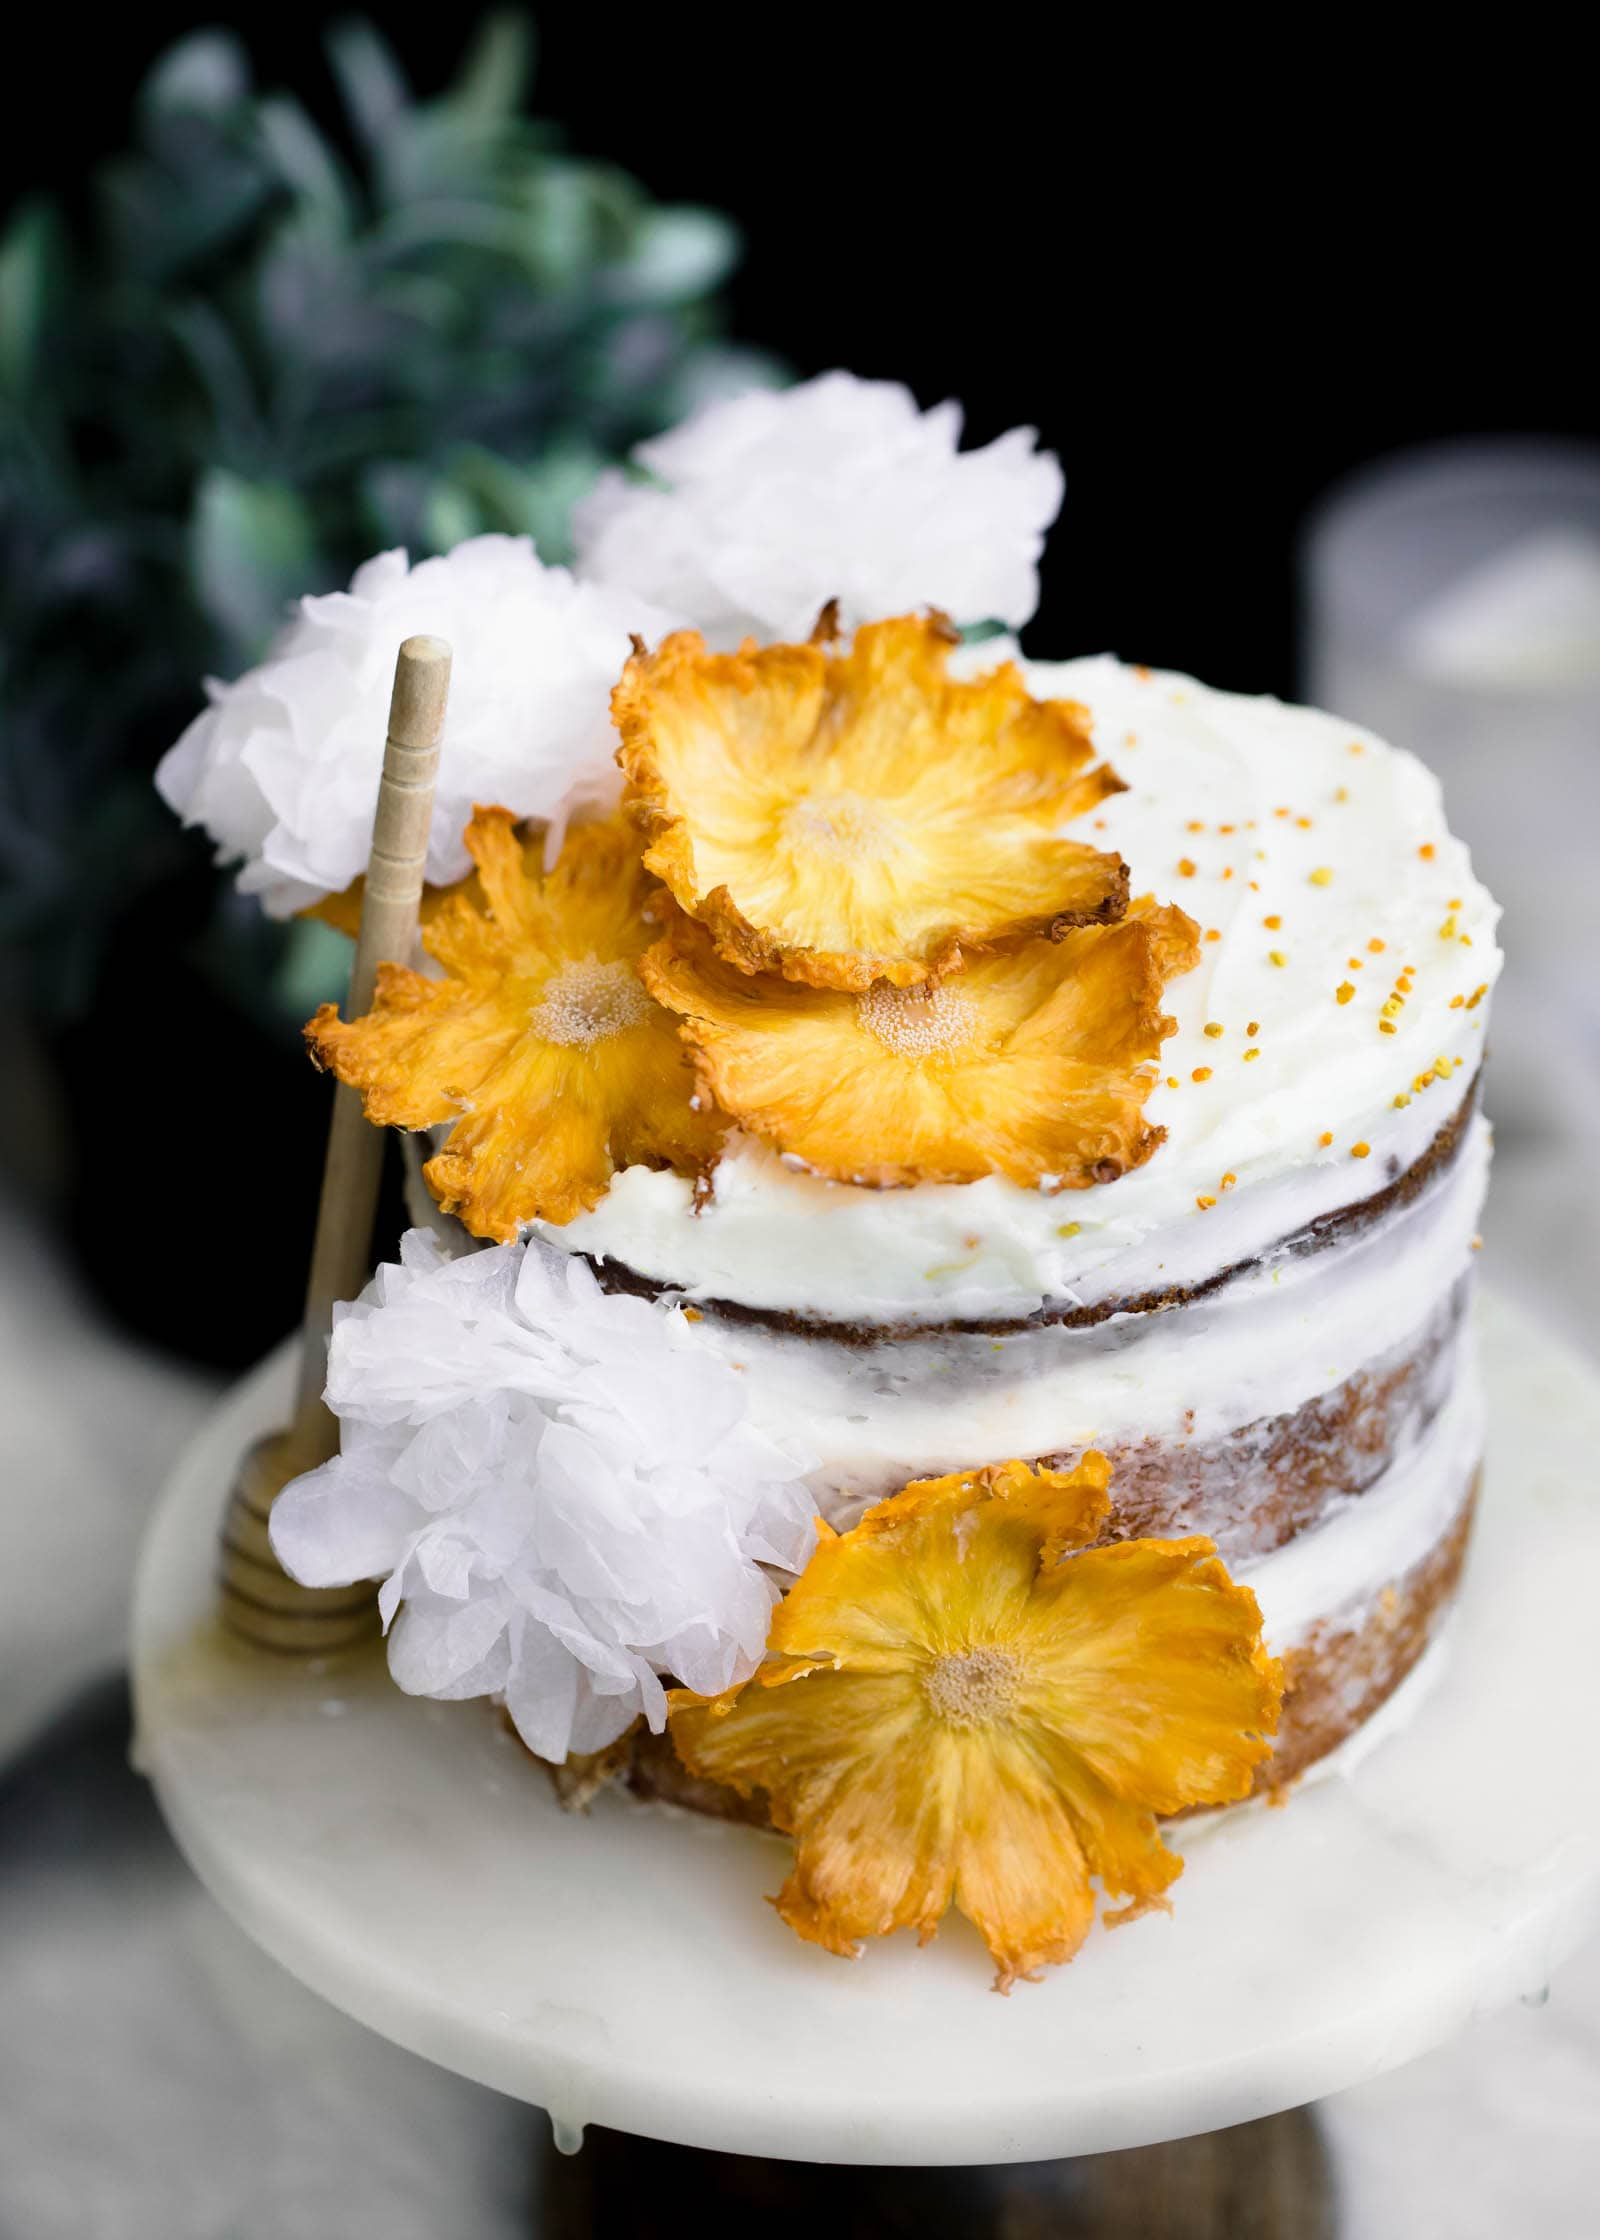 Hummingbird Cake with dried pineapple